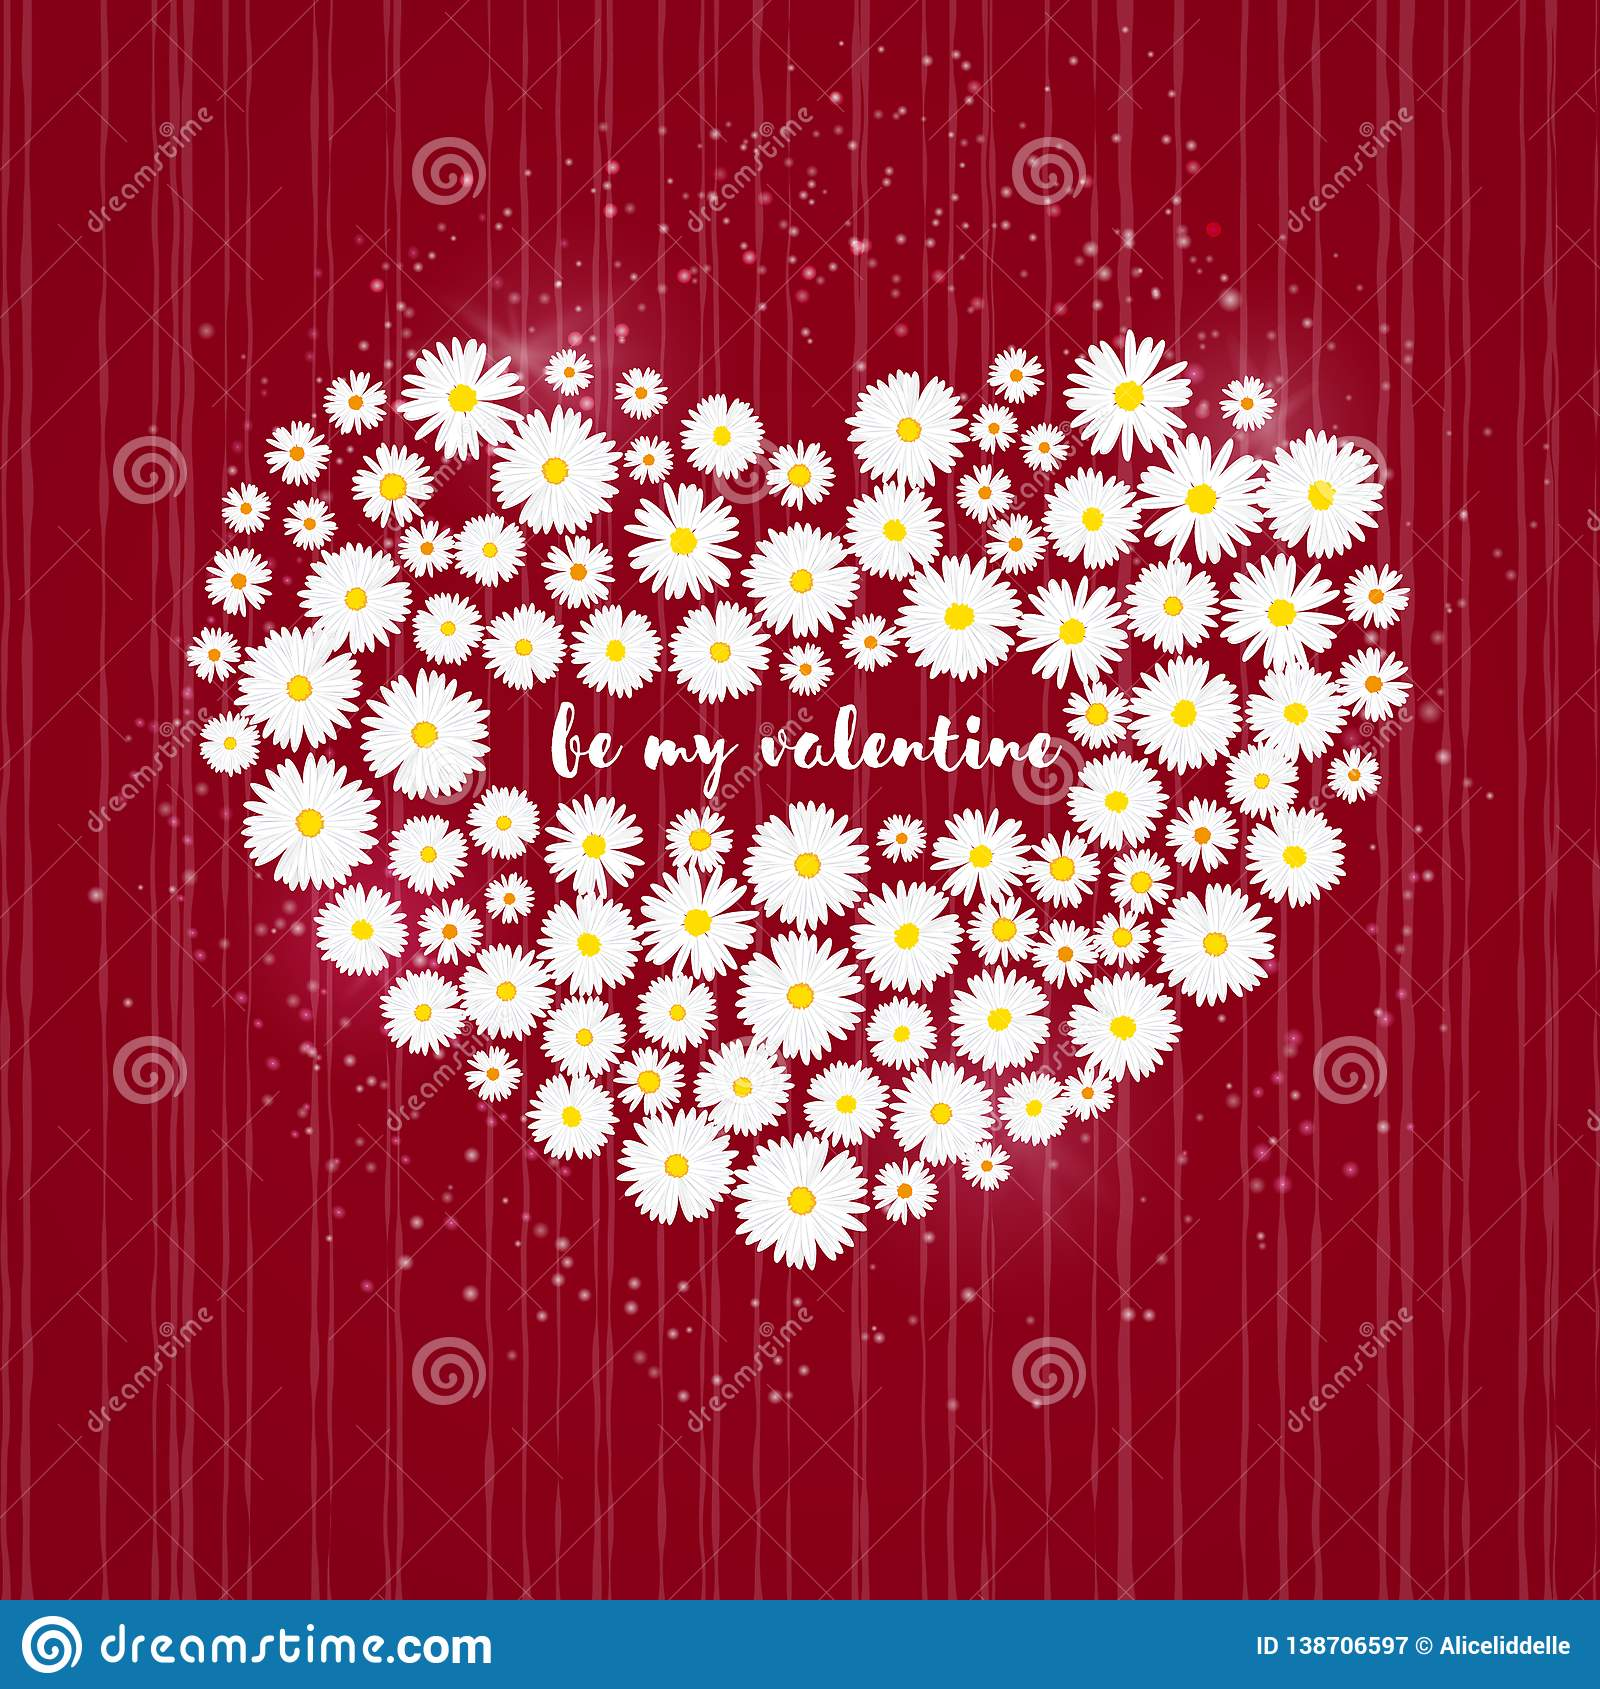 Heart Valentines Day Card White Daisies On Red Background Wedding